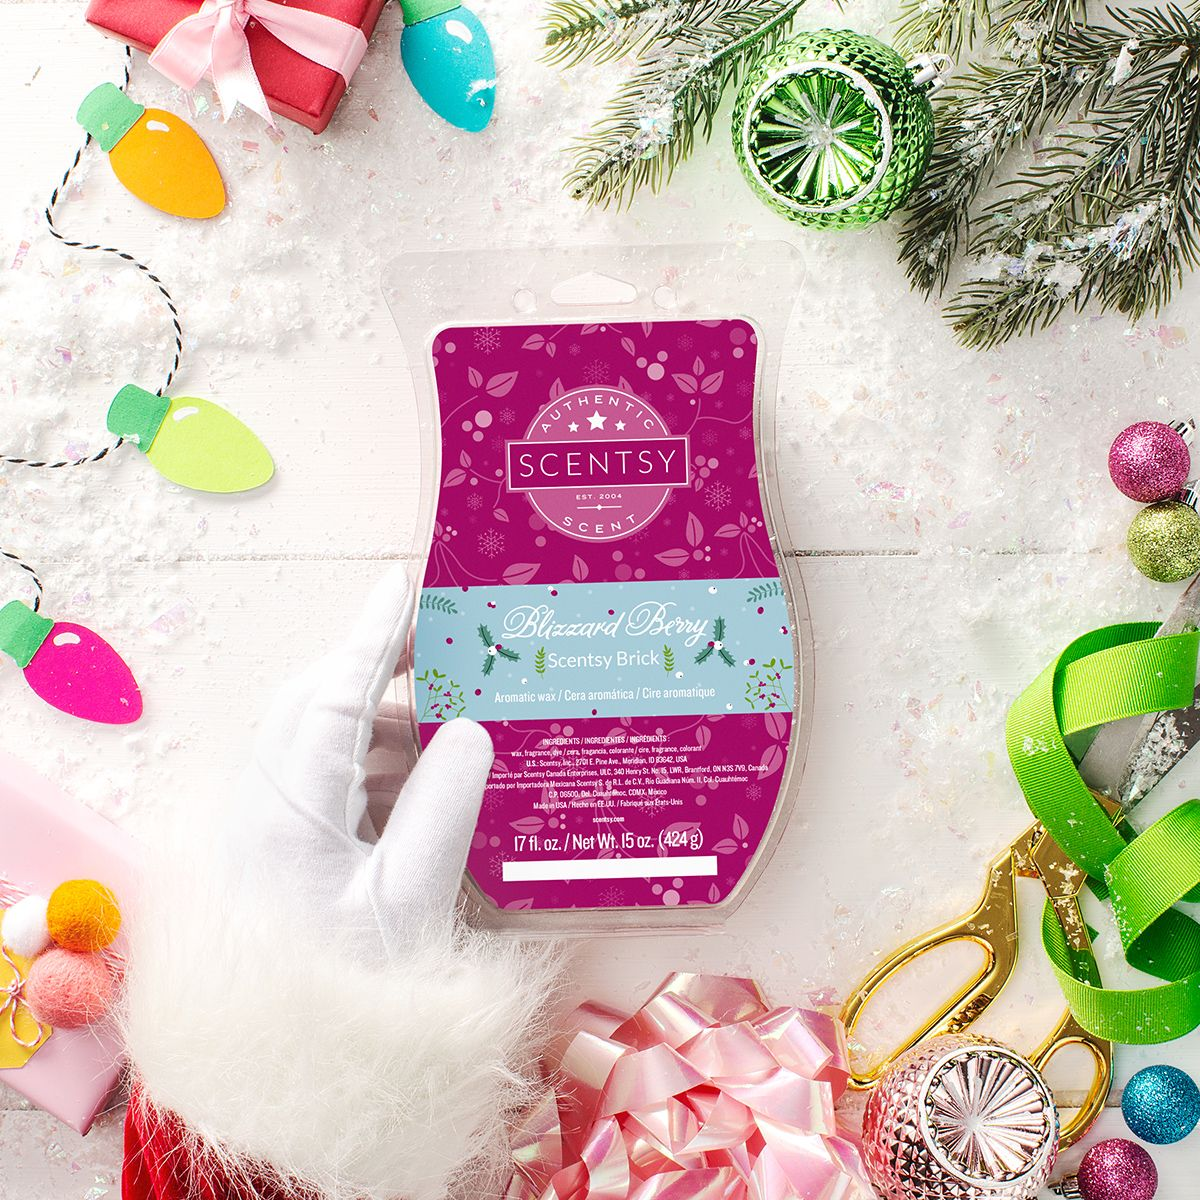 Blizzard Berry Holiday Brick tammyslater scentsy us | Scentsy in